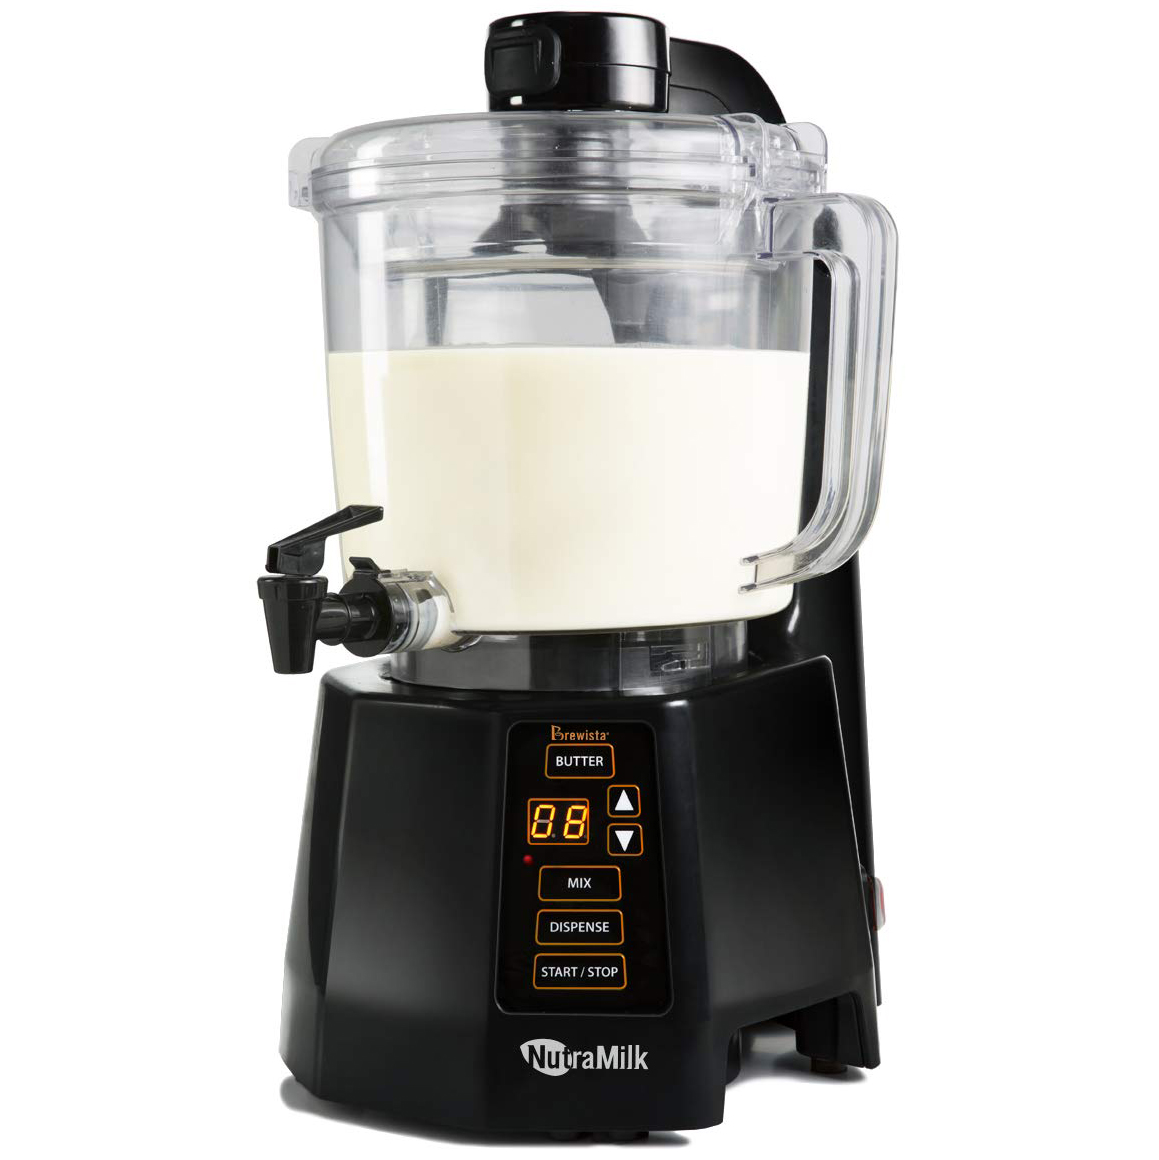 NutraMilk Nut Milk and Butter Processor